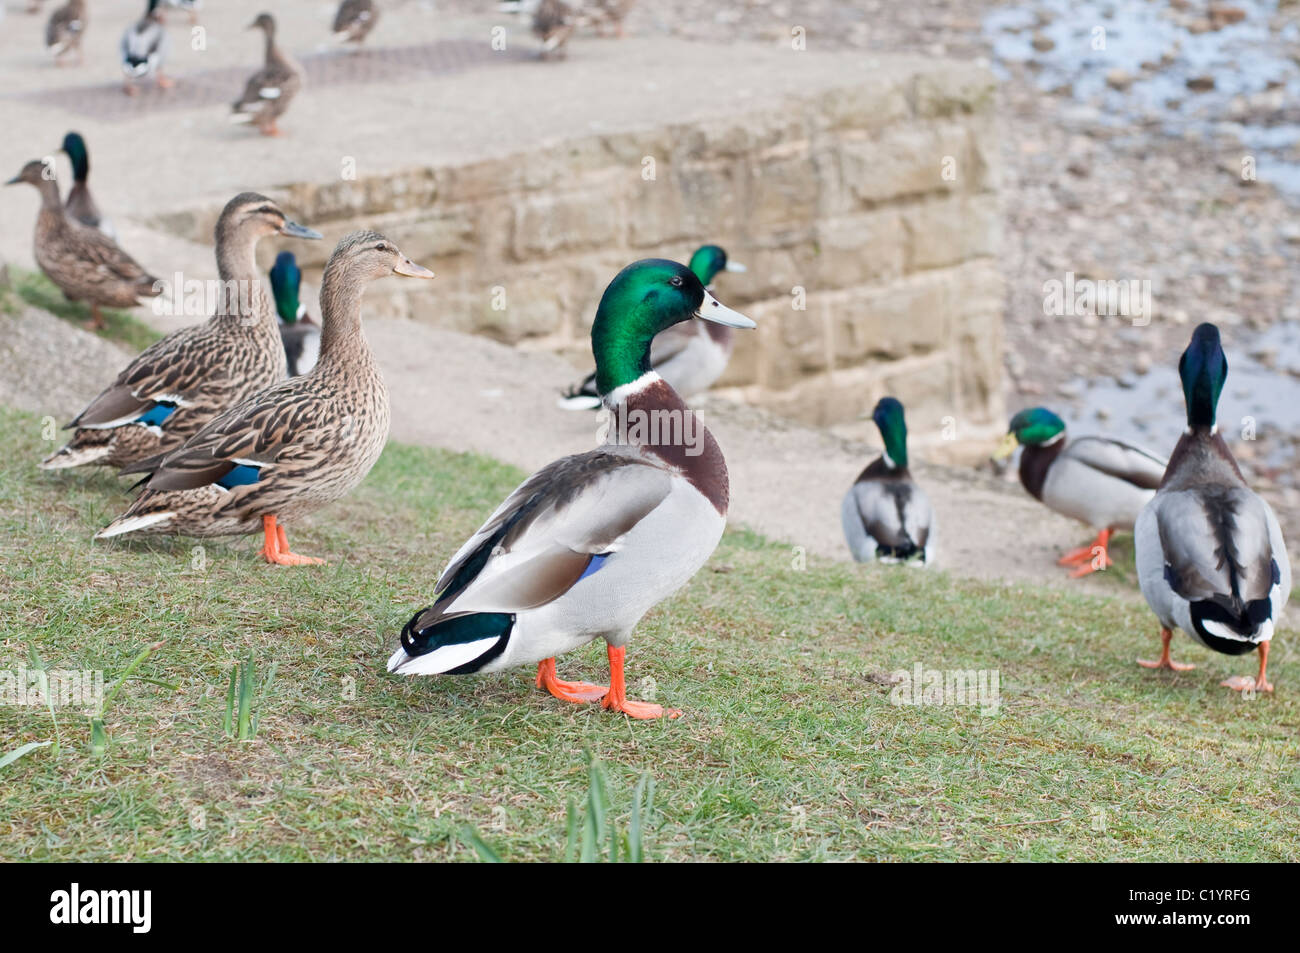 Male and female Mallard ducks in Sandsend, North Yorkshire, England. - Stock Image